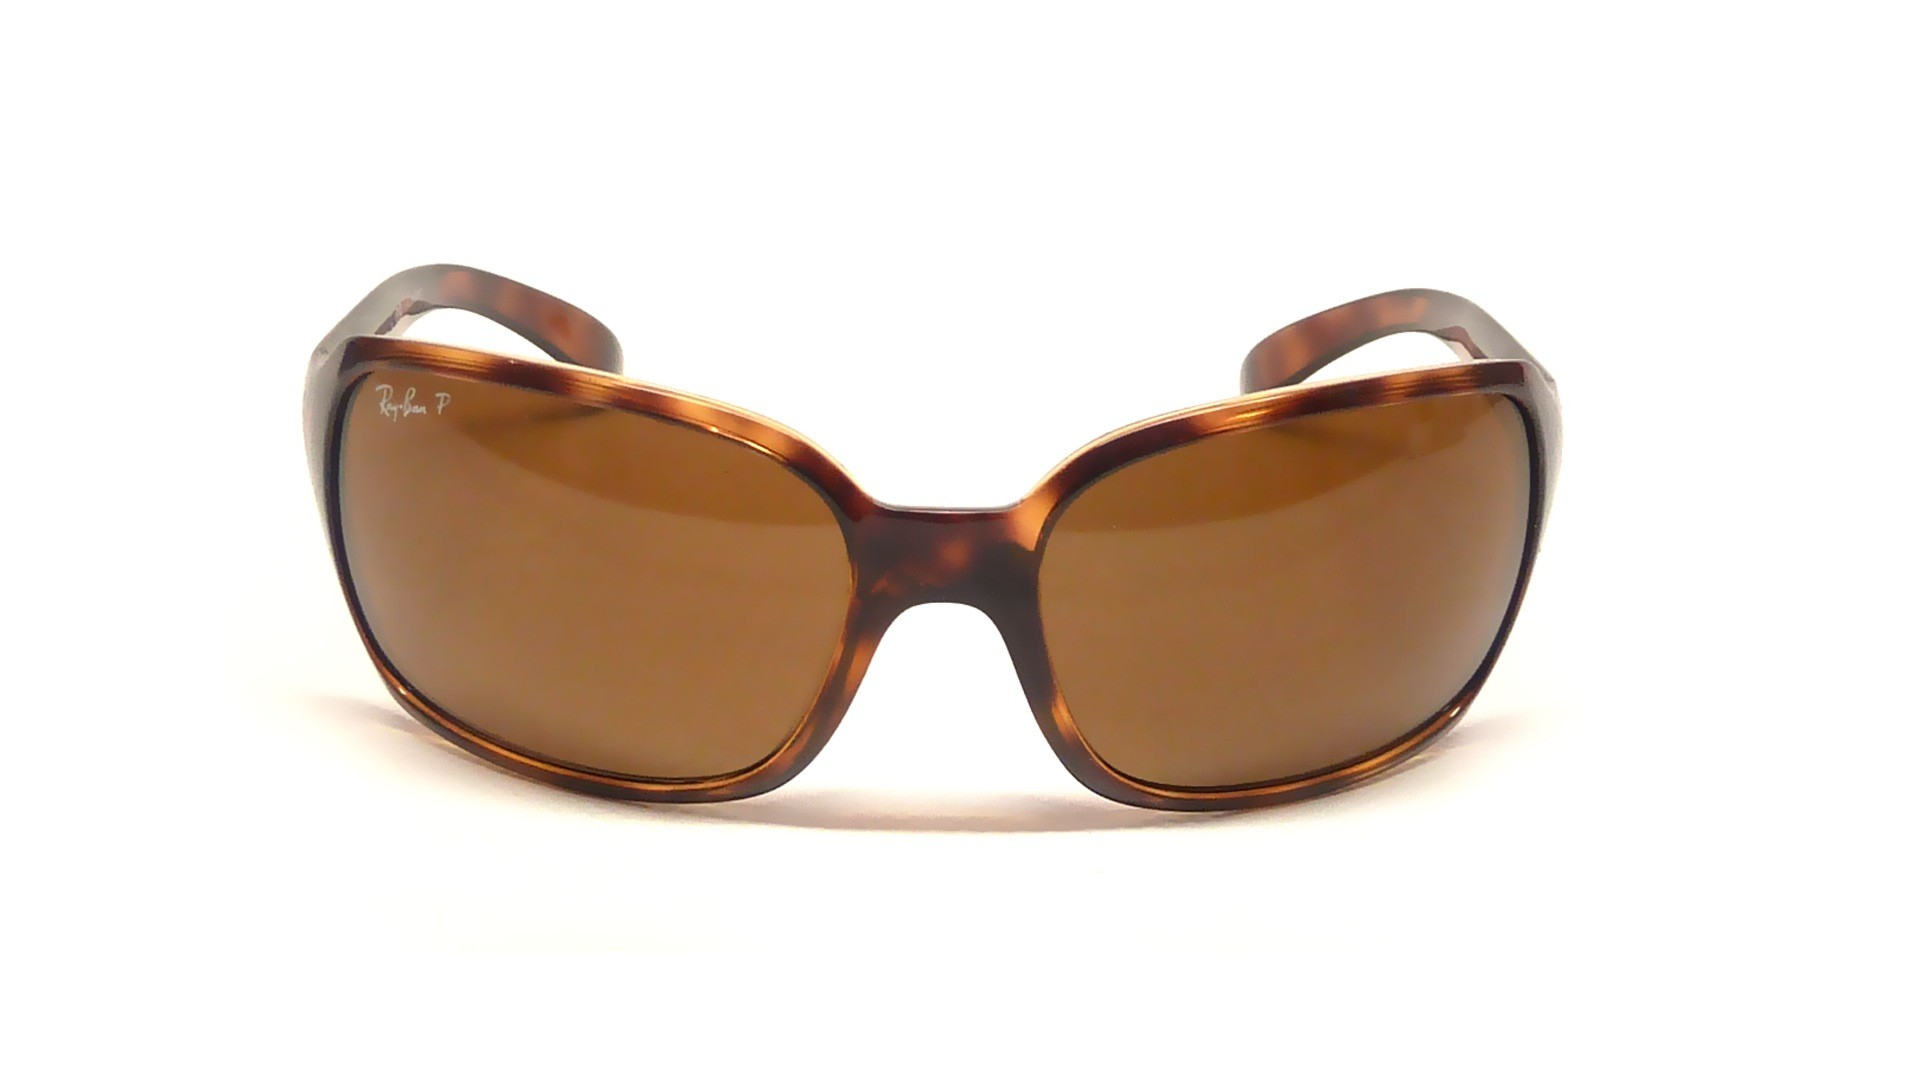 c98e429e03 Ray-Ban RB4068 642 57 60-19 Tortoise Large Polarized